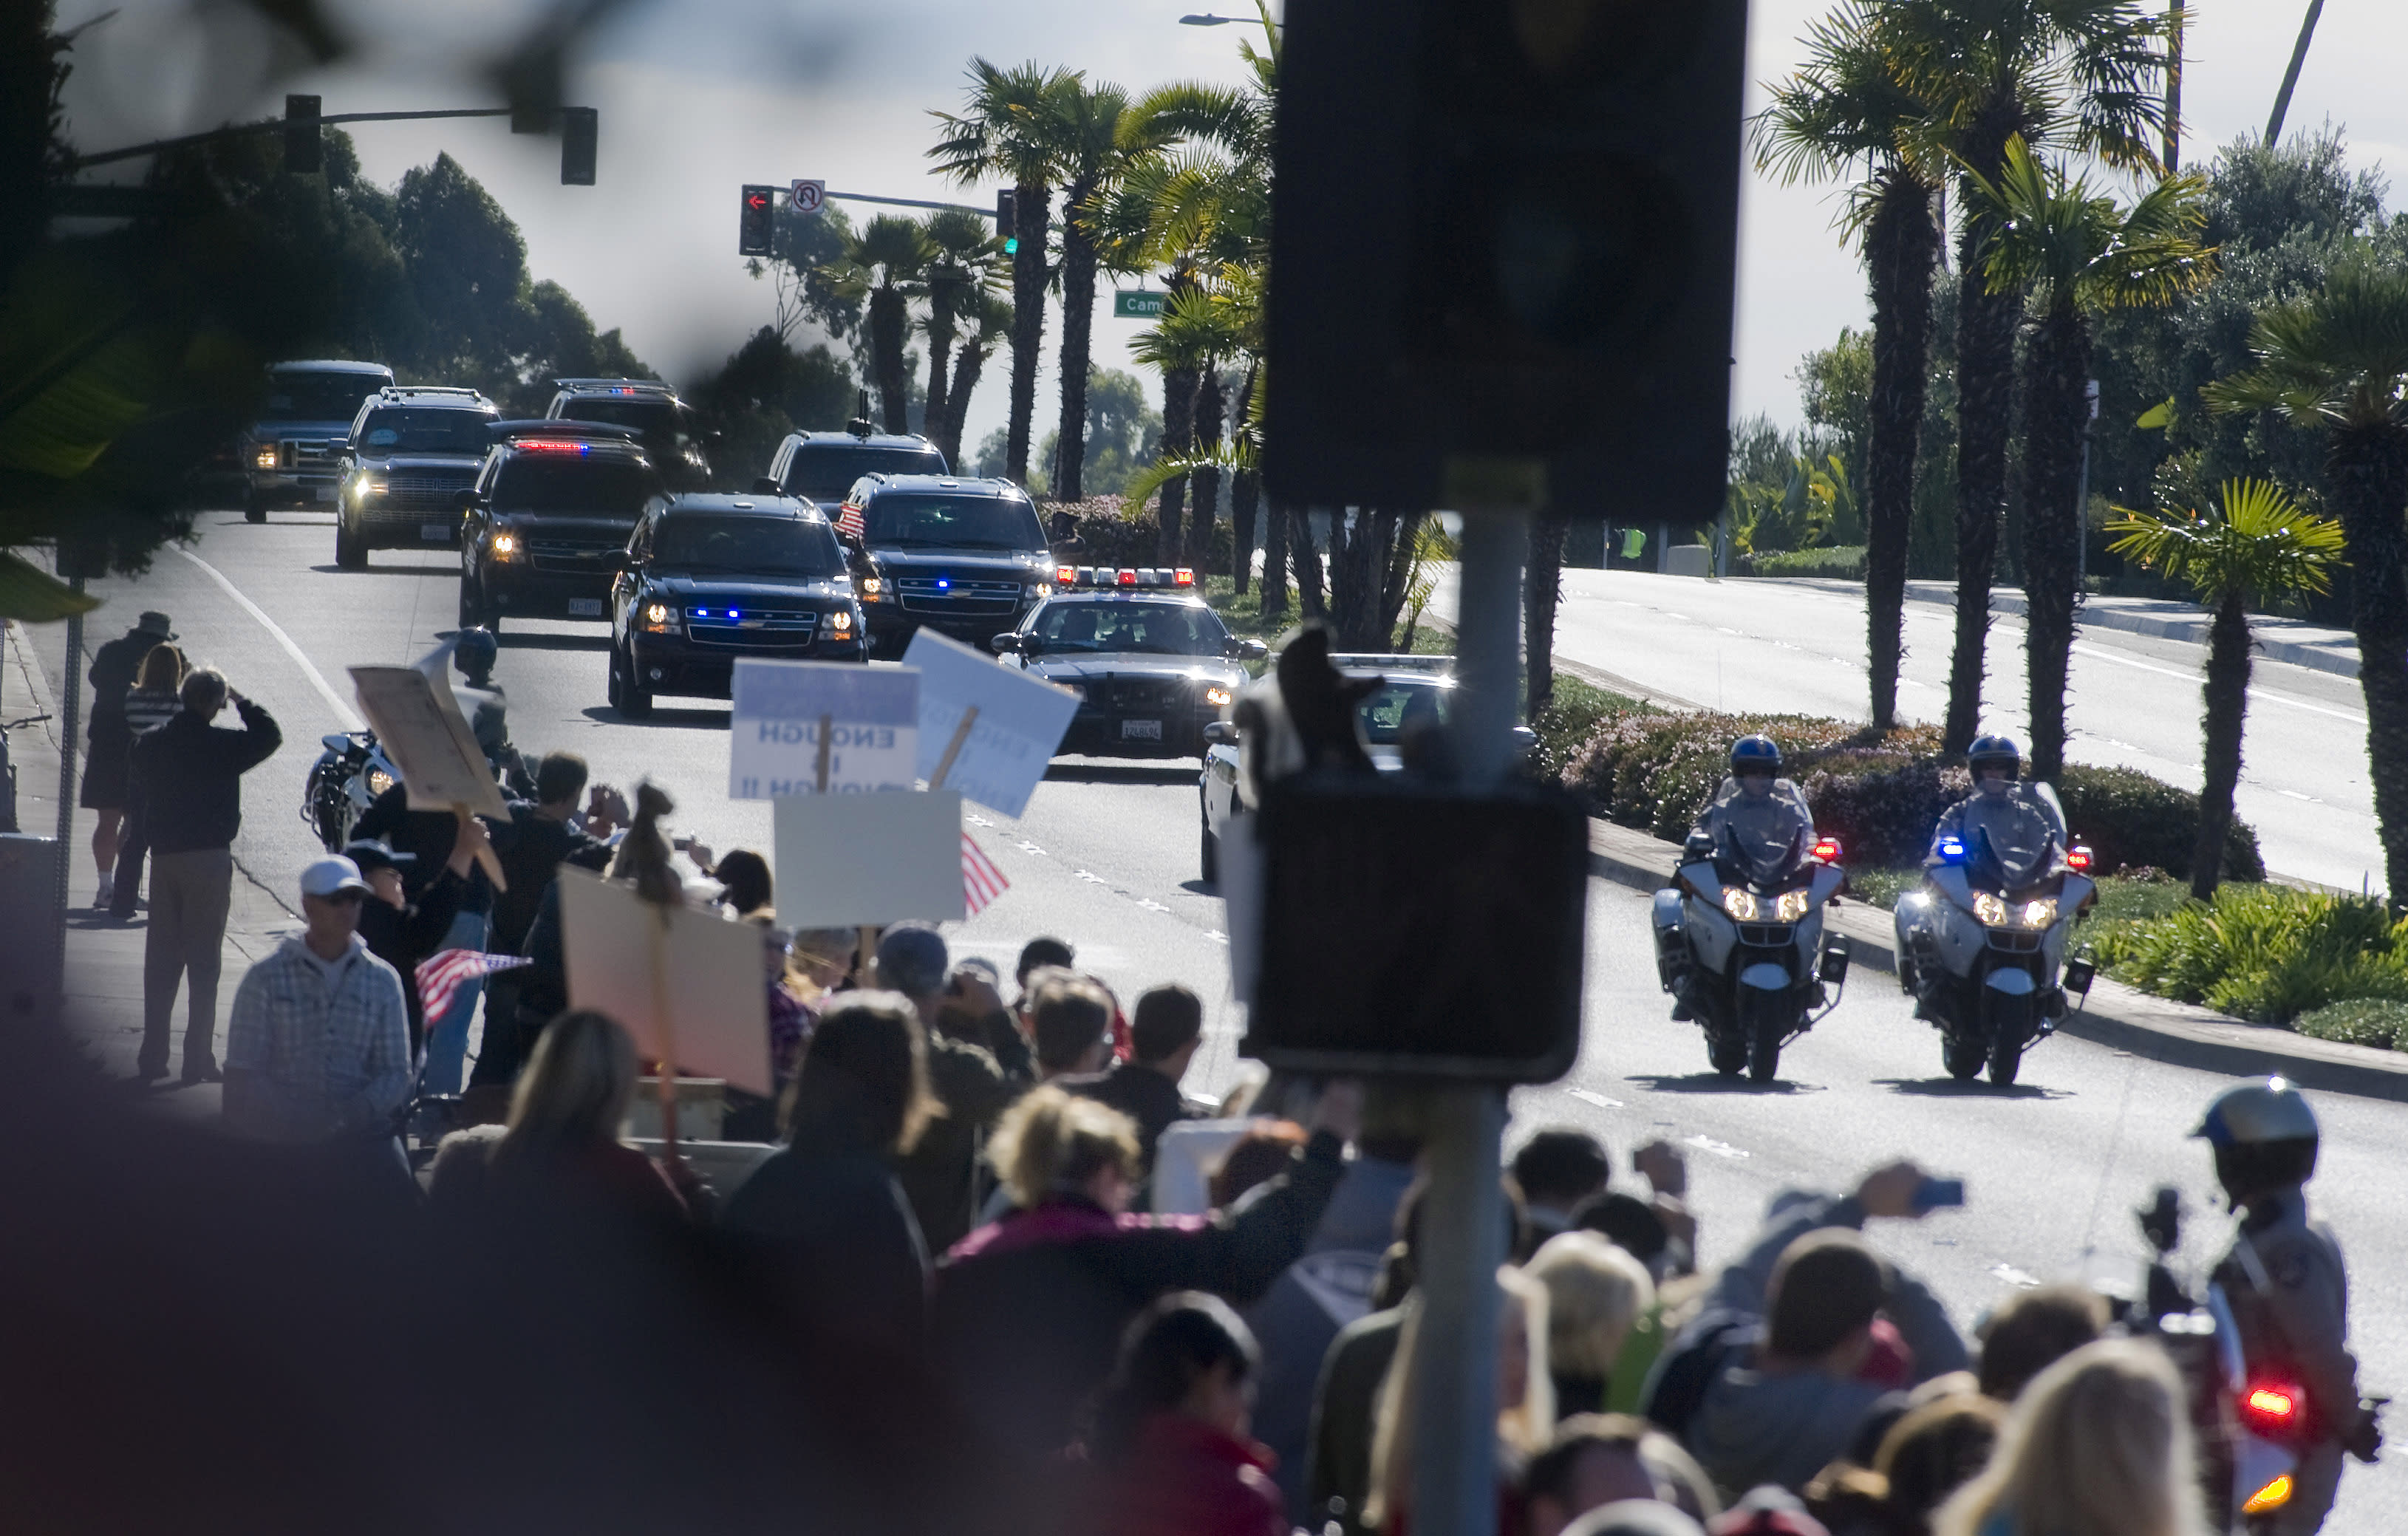 Who's behind the wheels of the presidential motorcade?